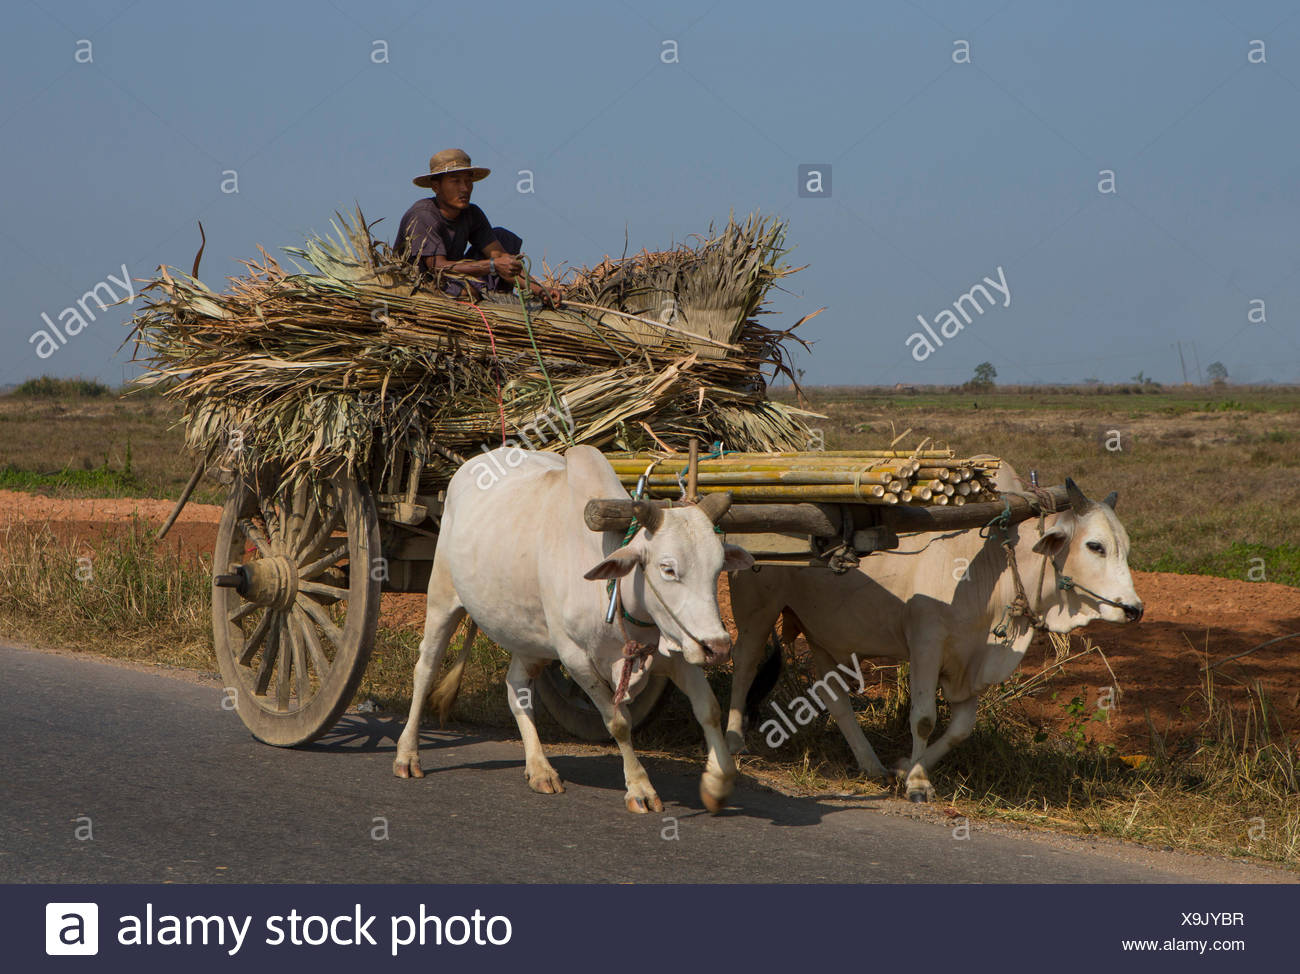 Mon, Myanmar, Burma, Asia, colourful, cows, lorry, ox cart, people, road, transport, agriculture, - Stock Image